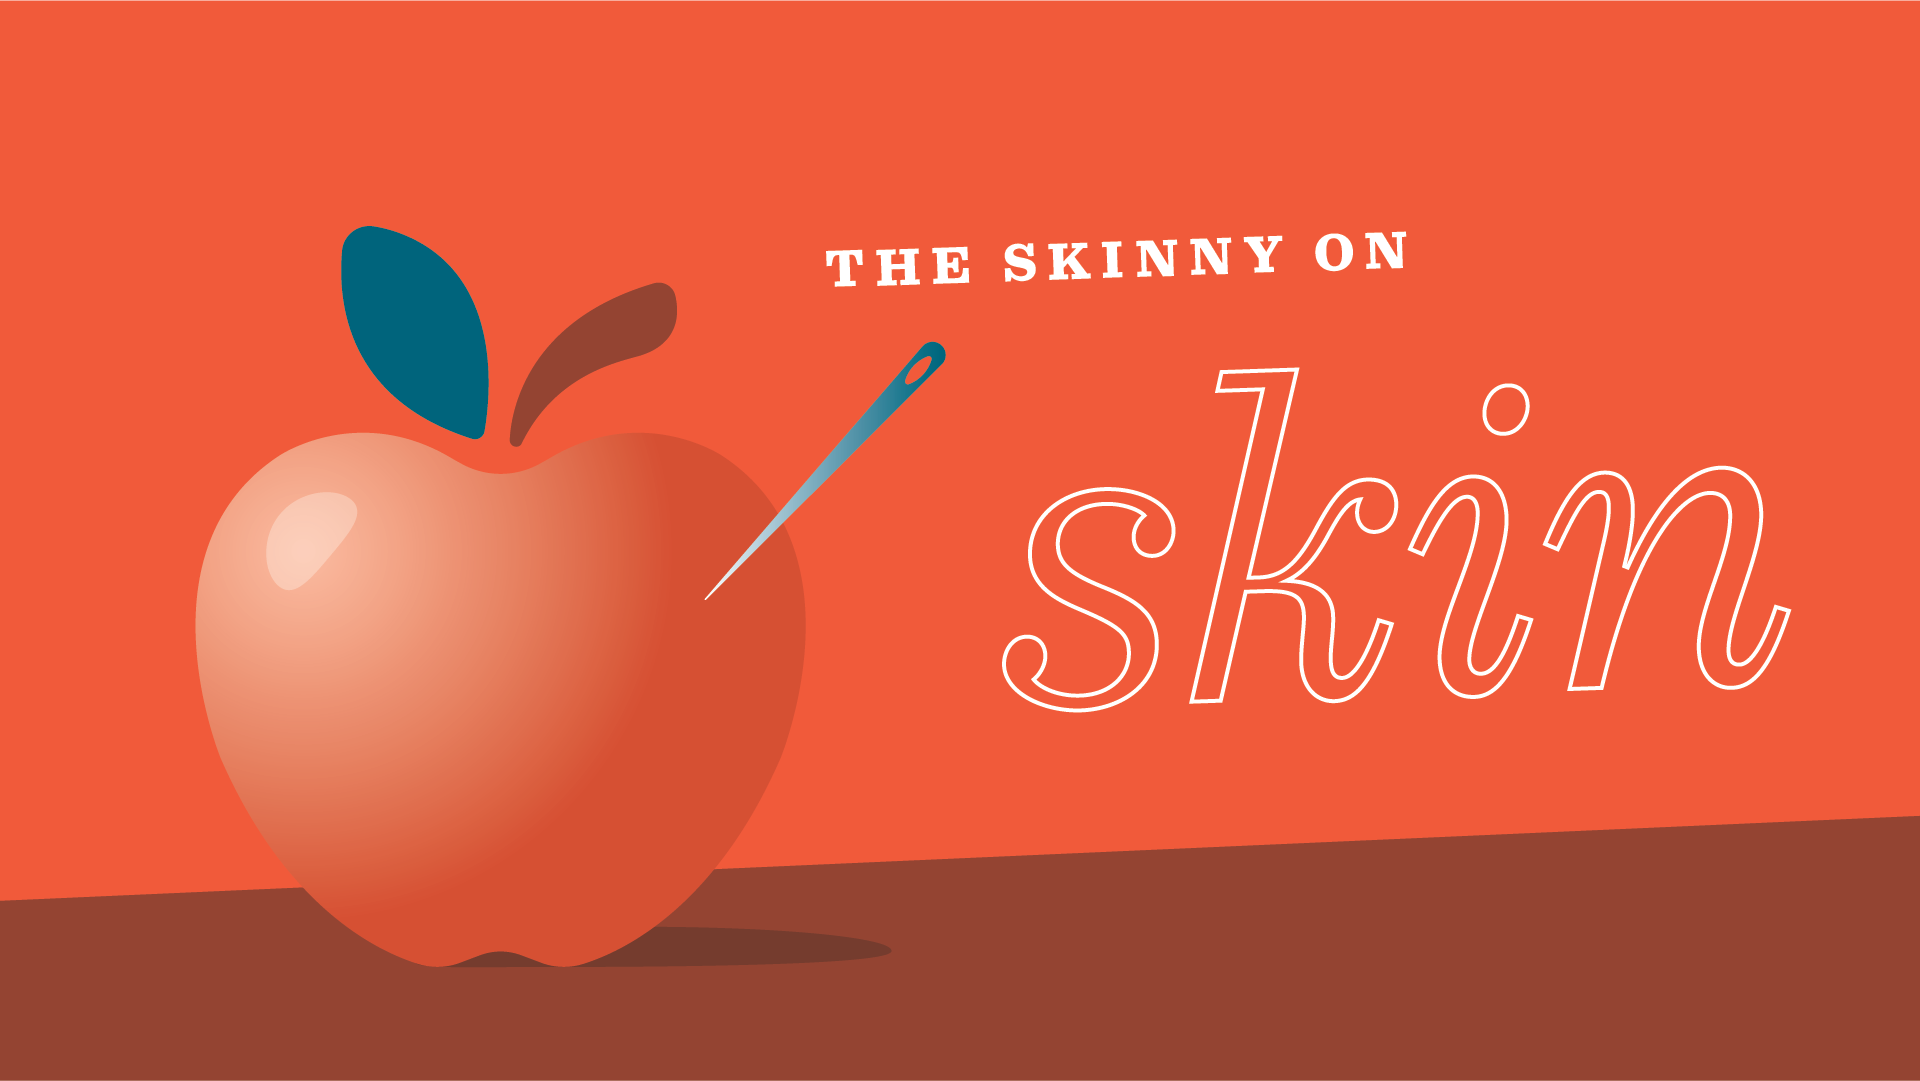 Even apples need skin science recipe